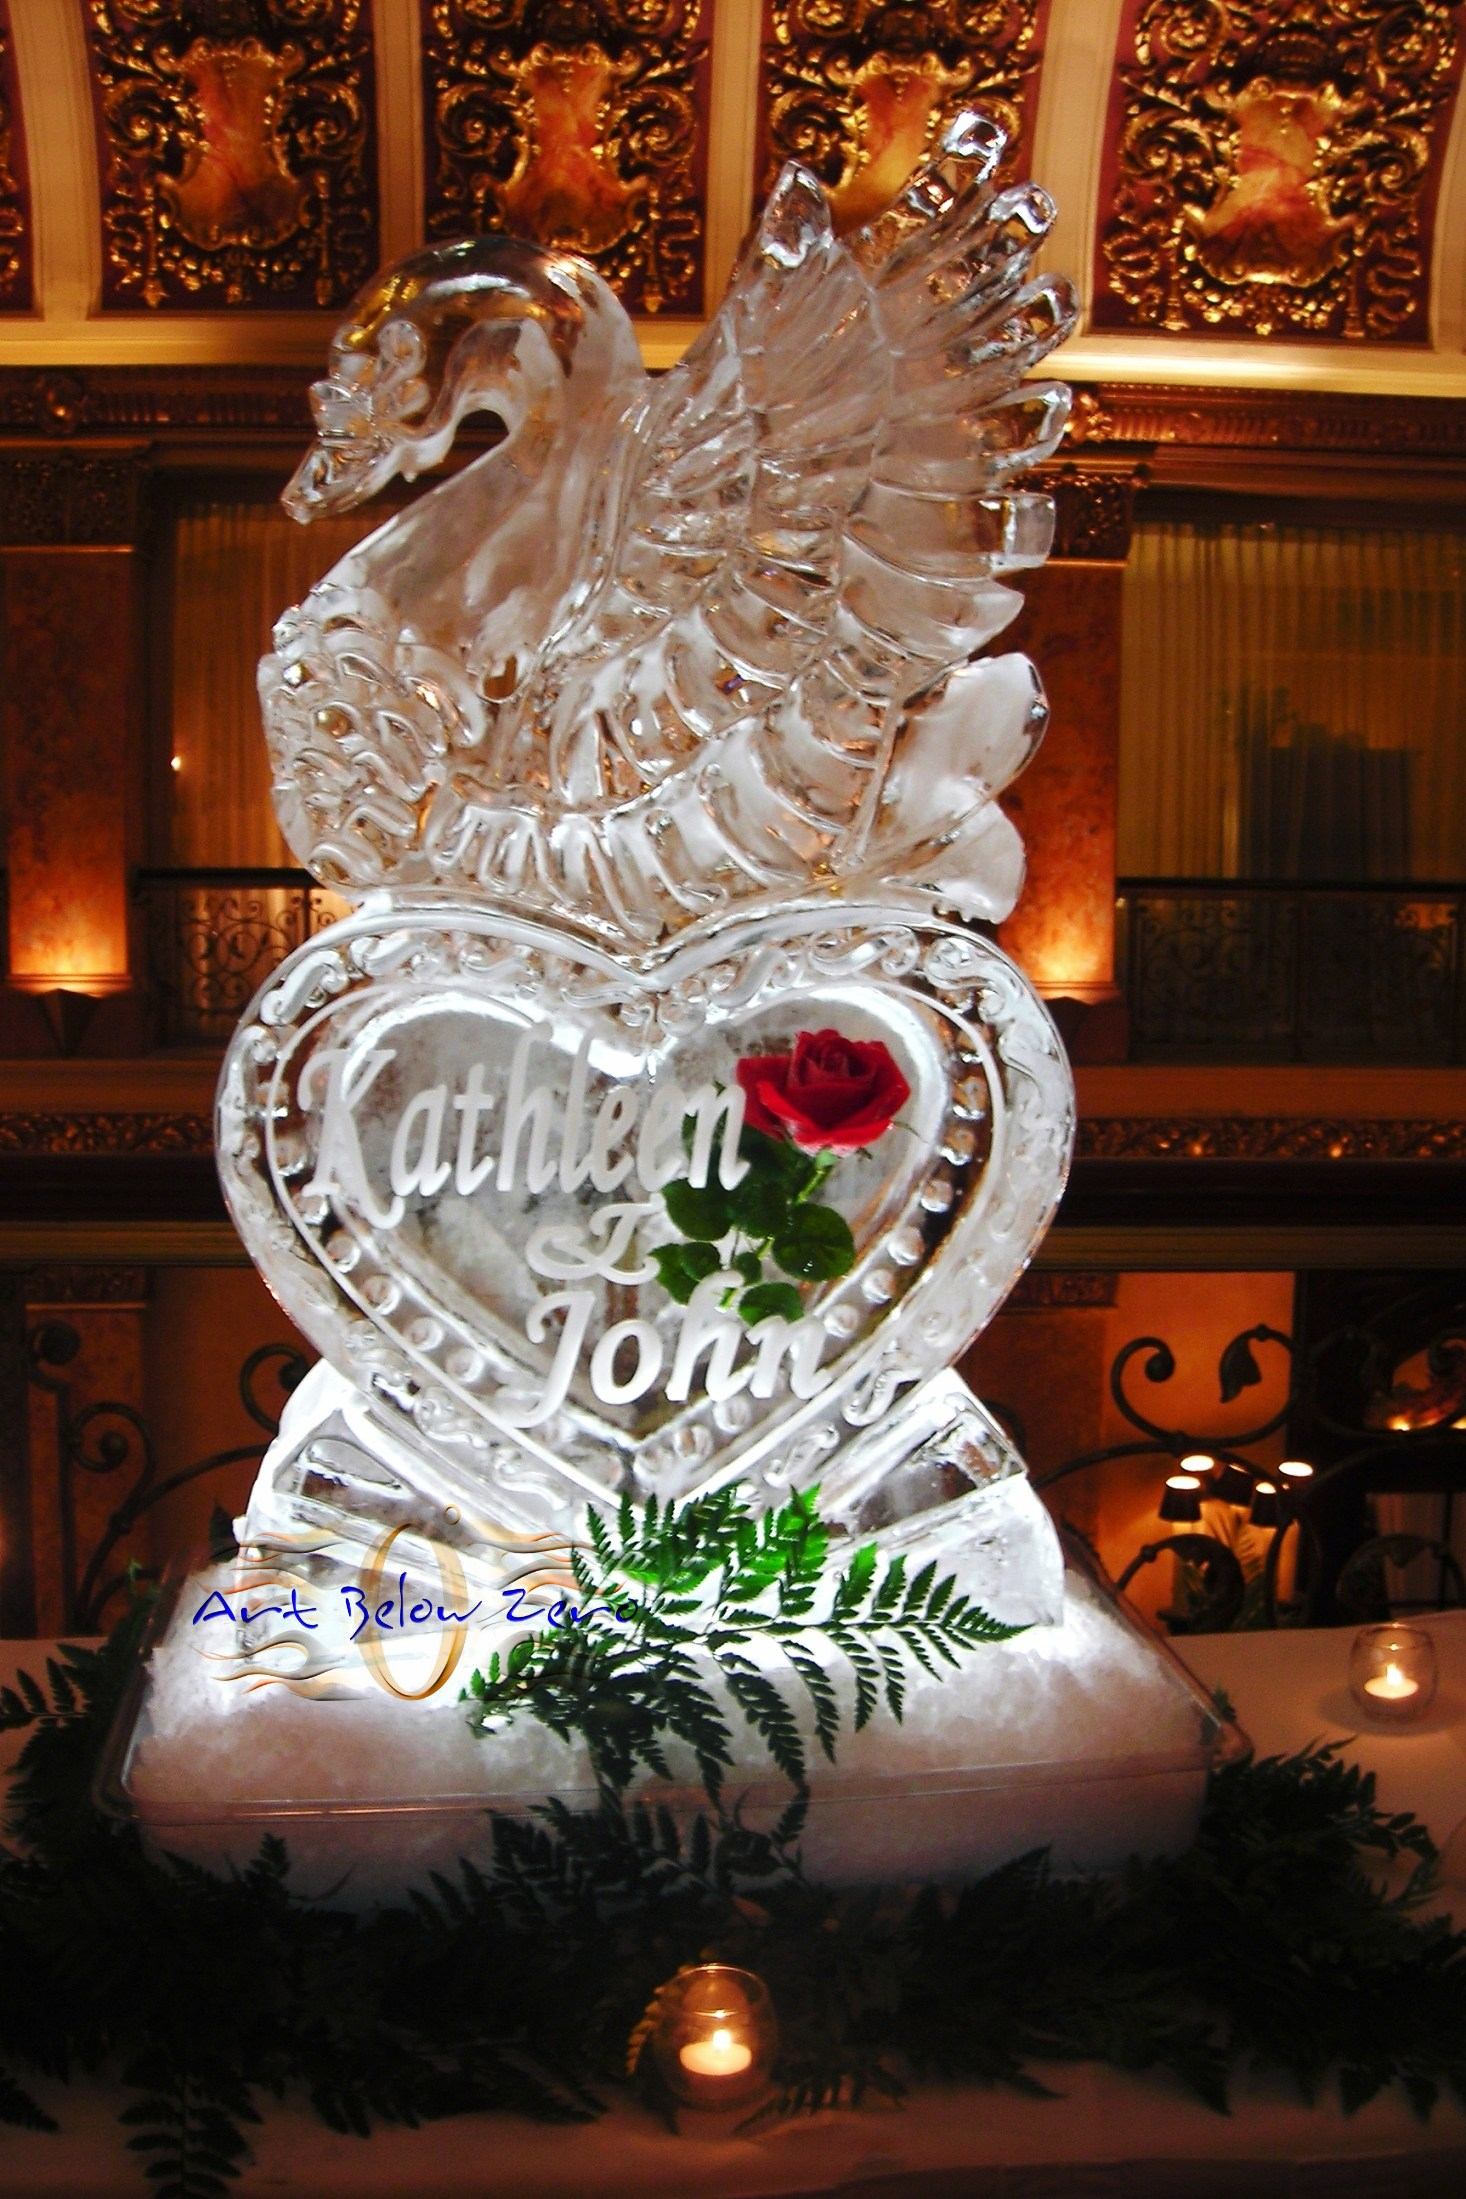 Swan on a heart with names of the bride and groom ice sculpture